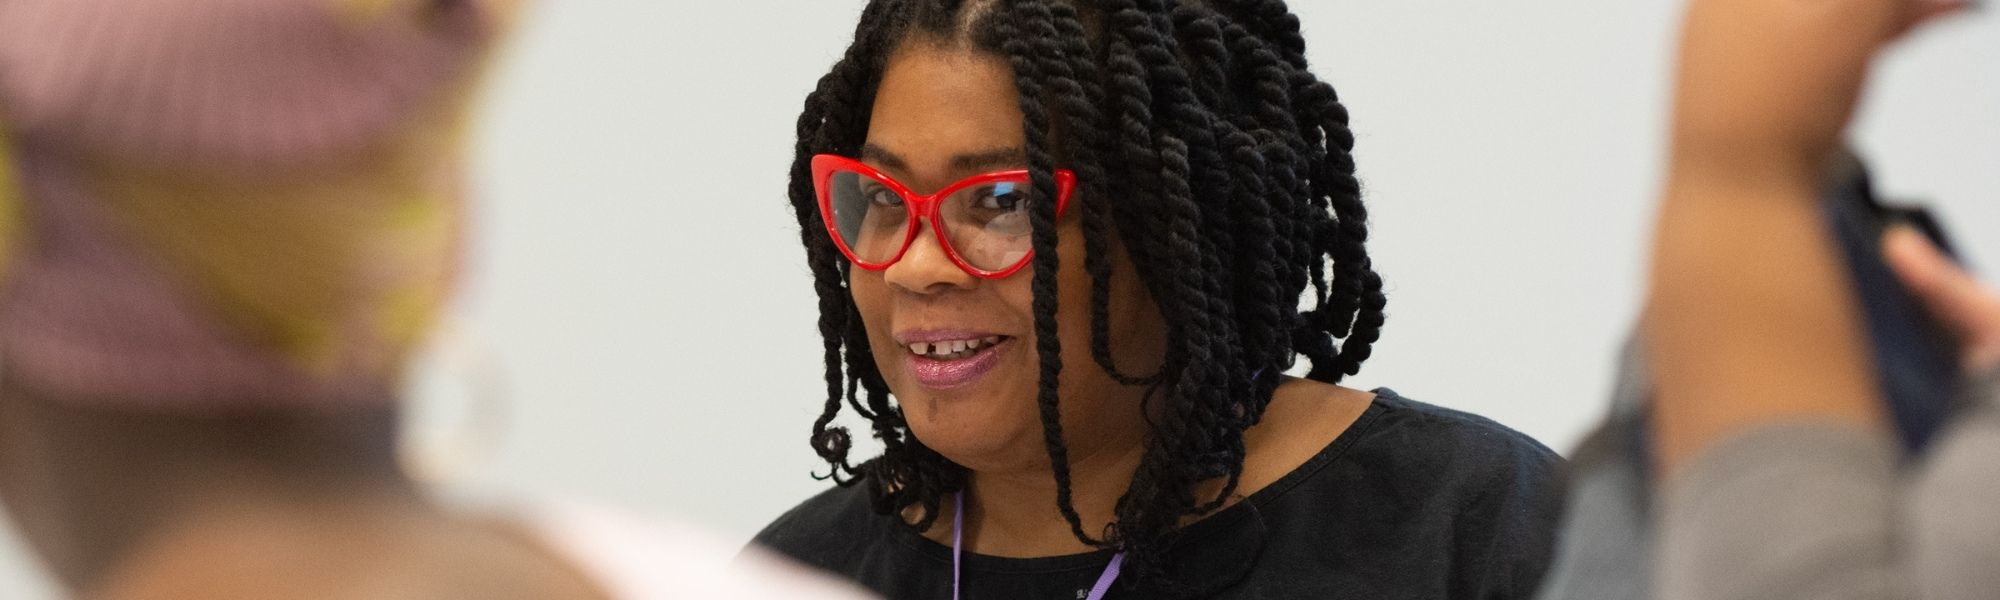 a smiling black woman with shoulder-length twists and a black tee peers through red cat-eye glasses amidst an out-of-focus group of people.